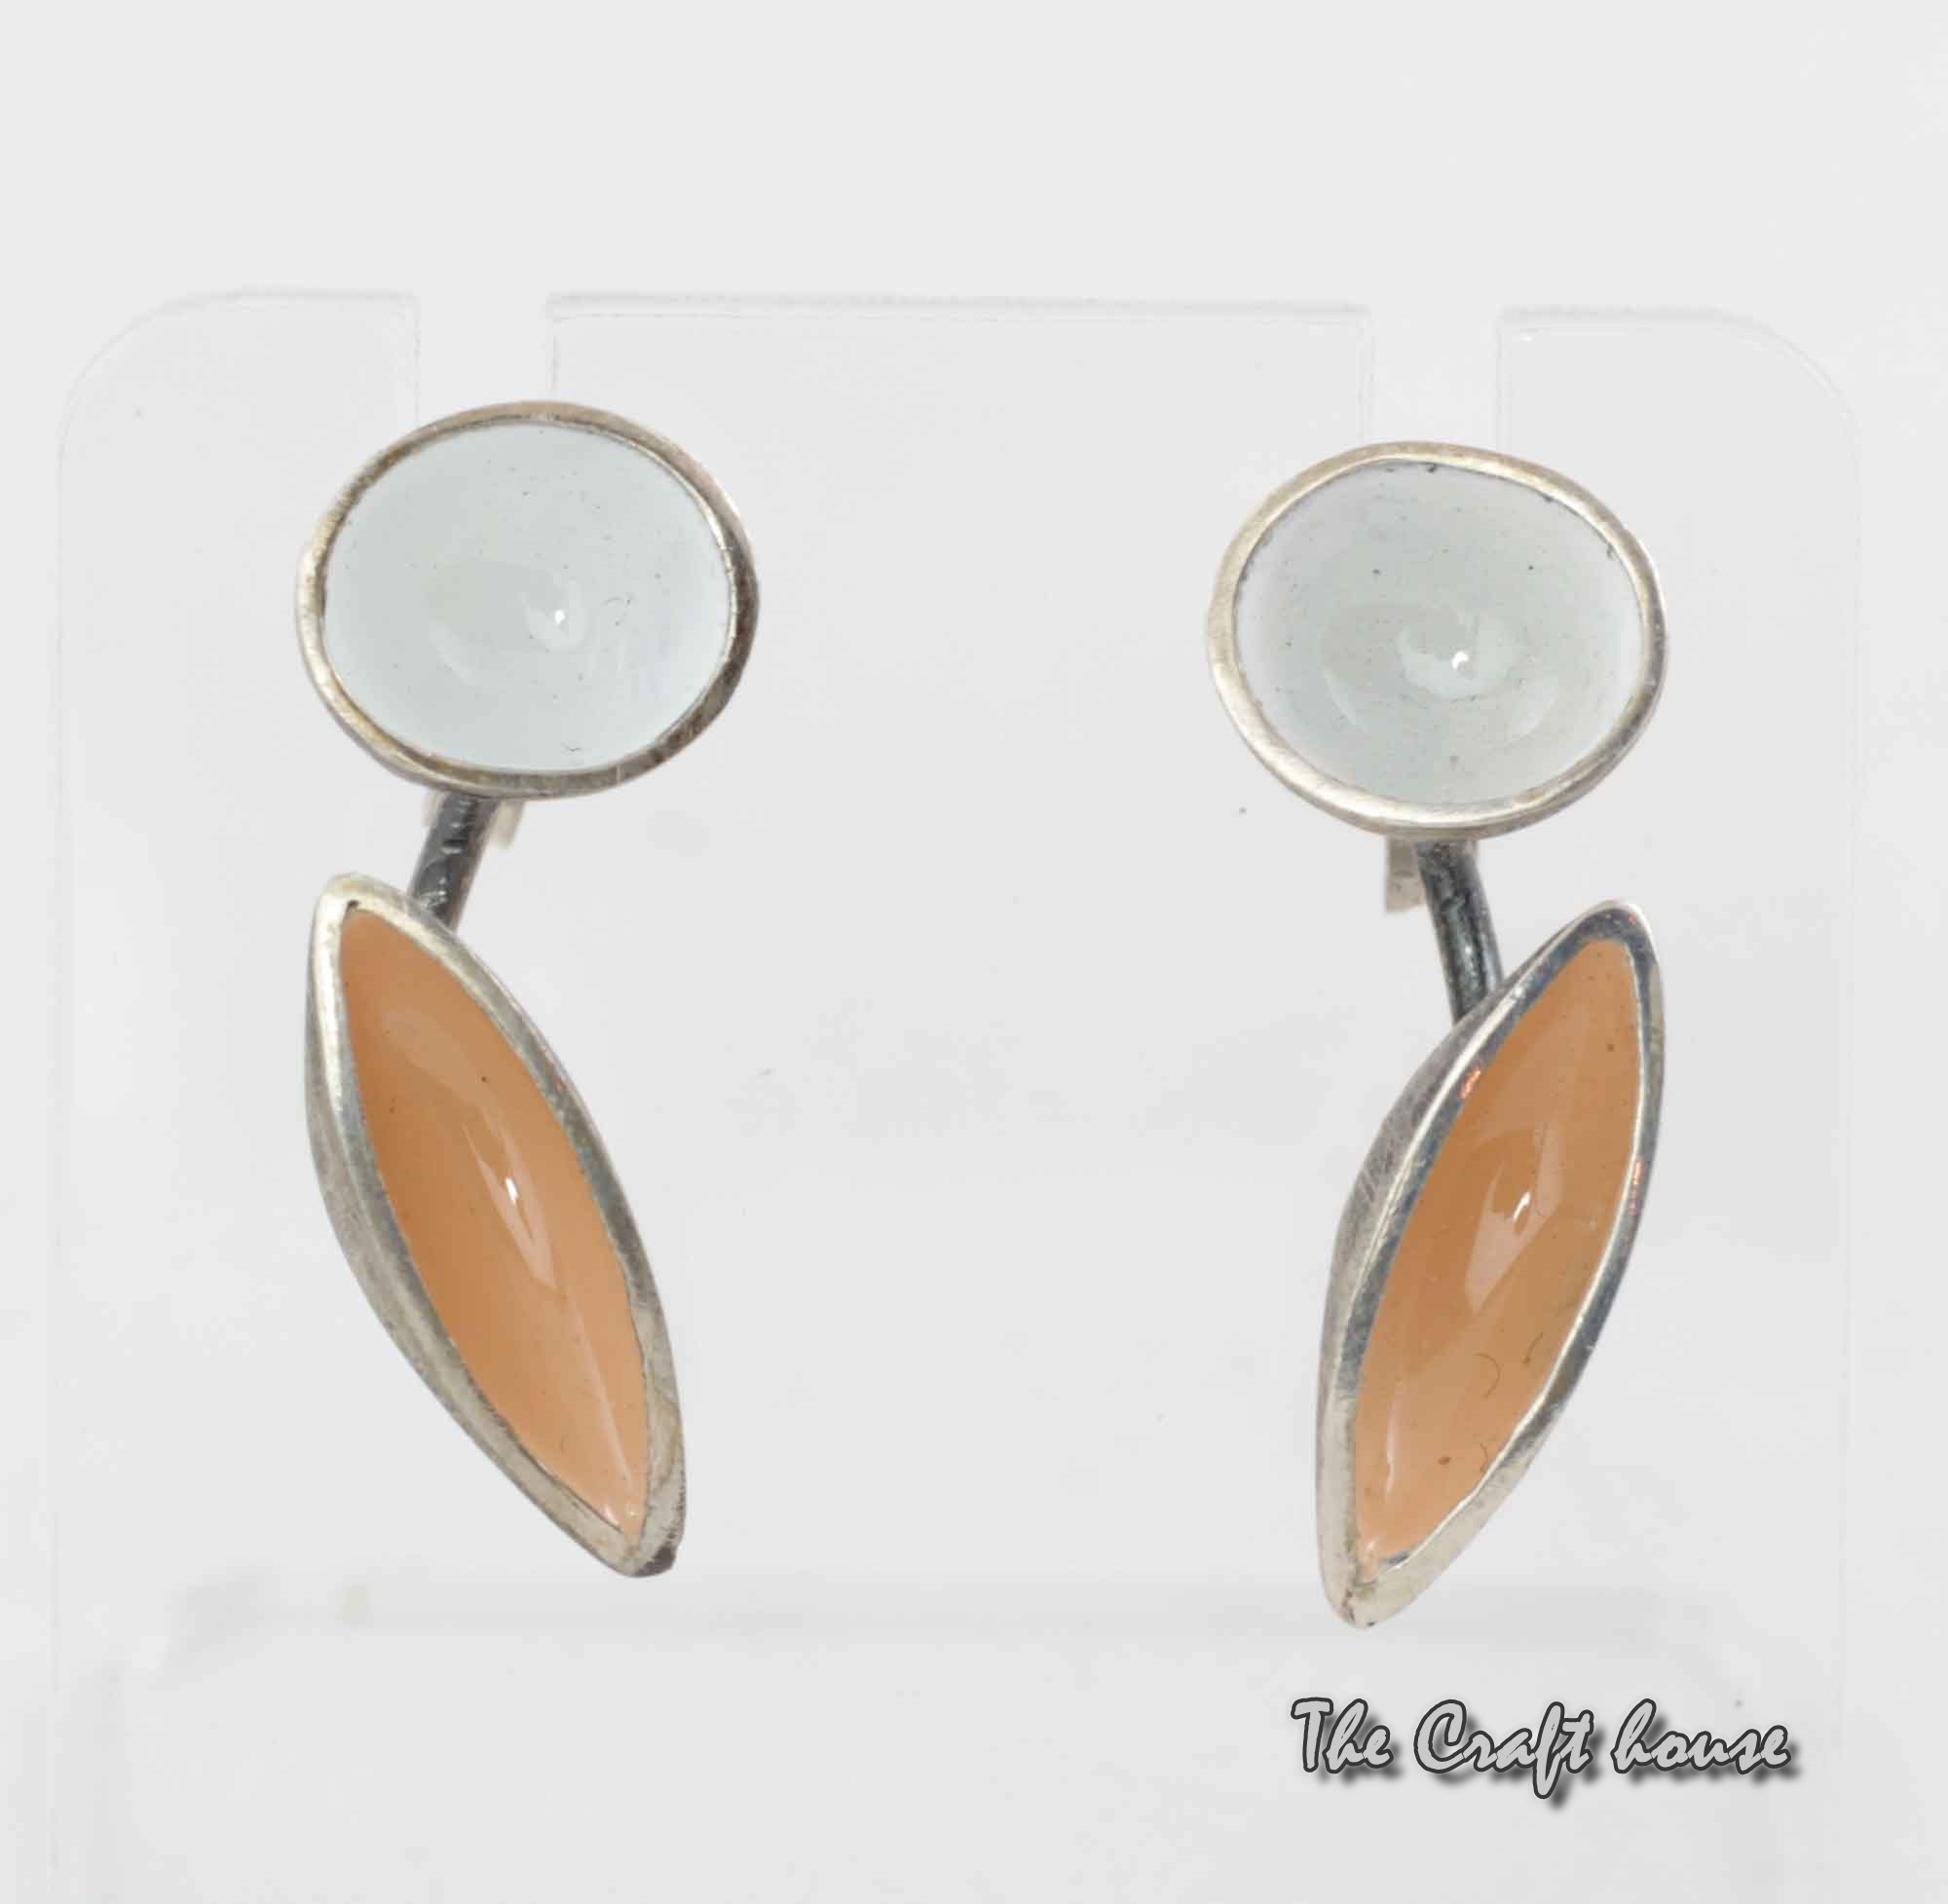 Silver earrings with color enamel